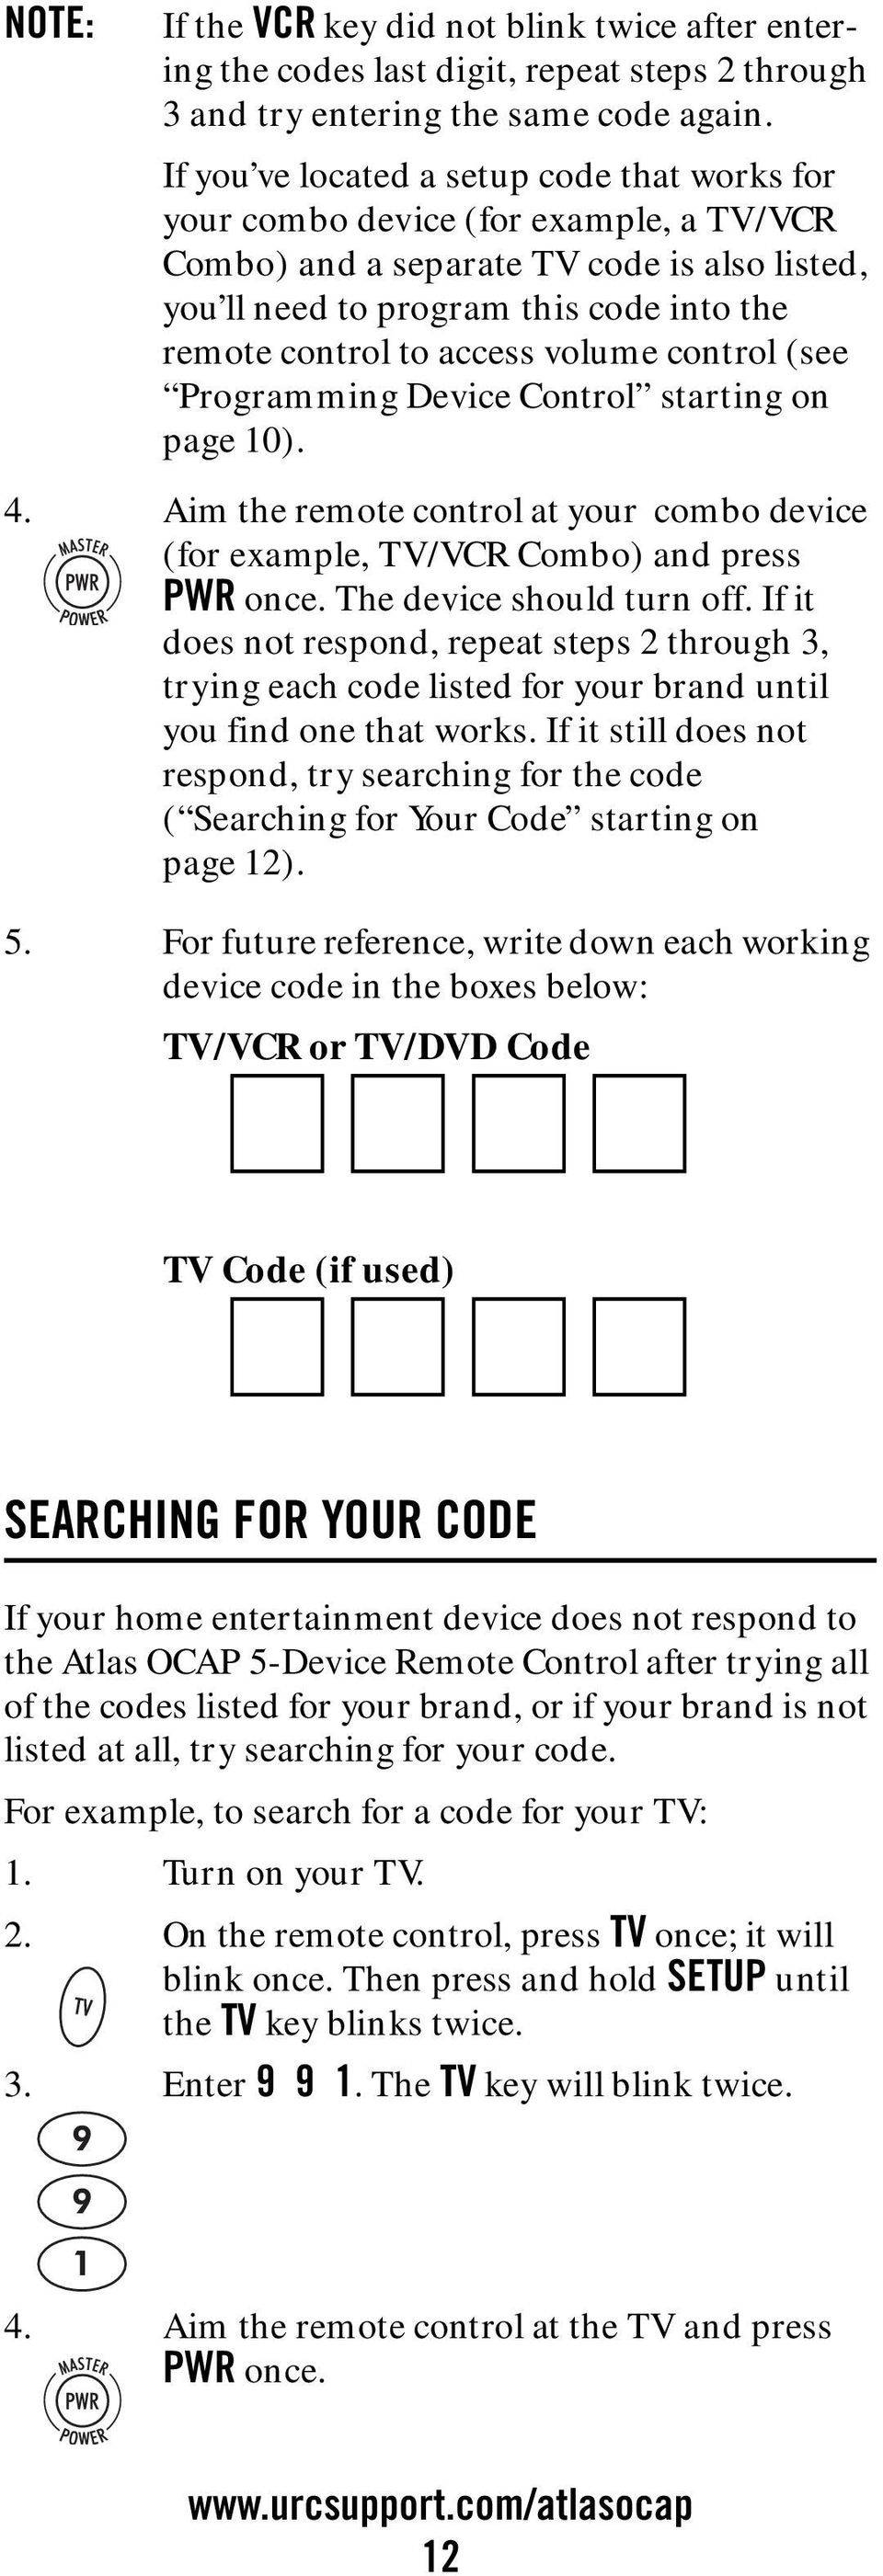 volume control (see Programming Device Control starting on page 10). 4. Aim the remote control at your combo device (for example, TV/VCR Combo) and press PWR once. The device should turn off.